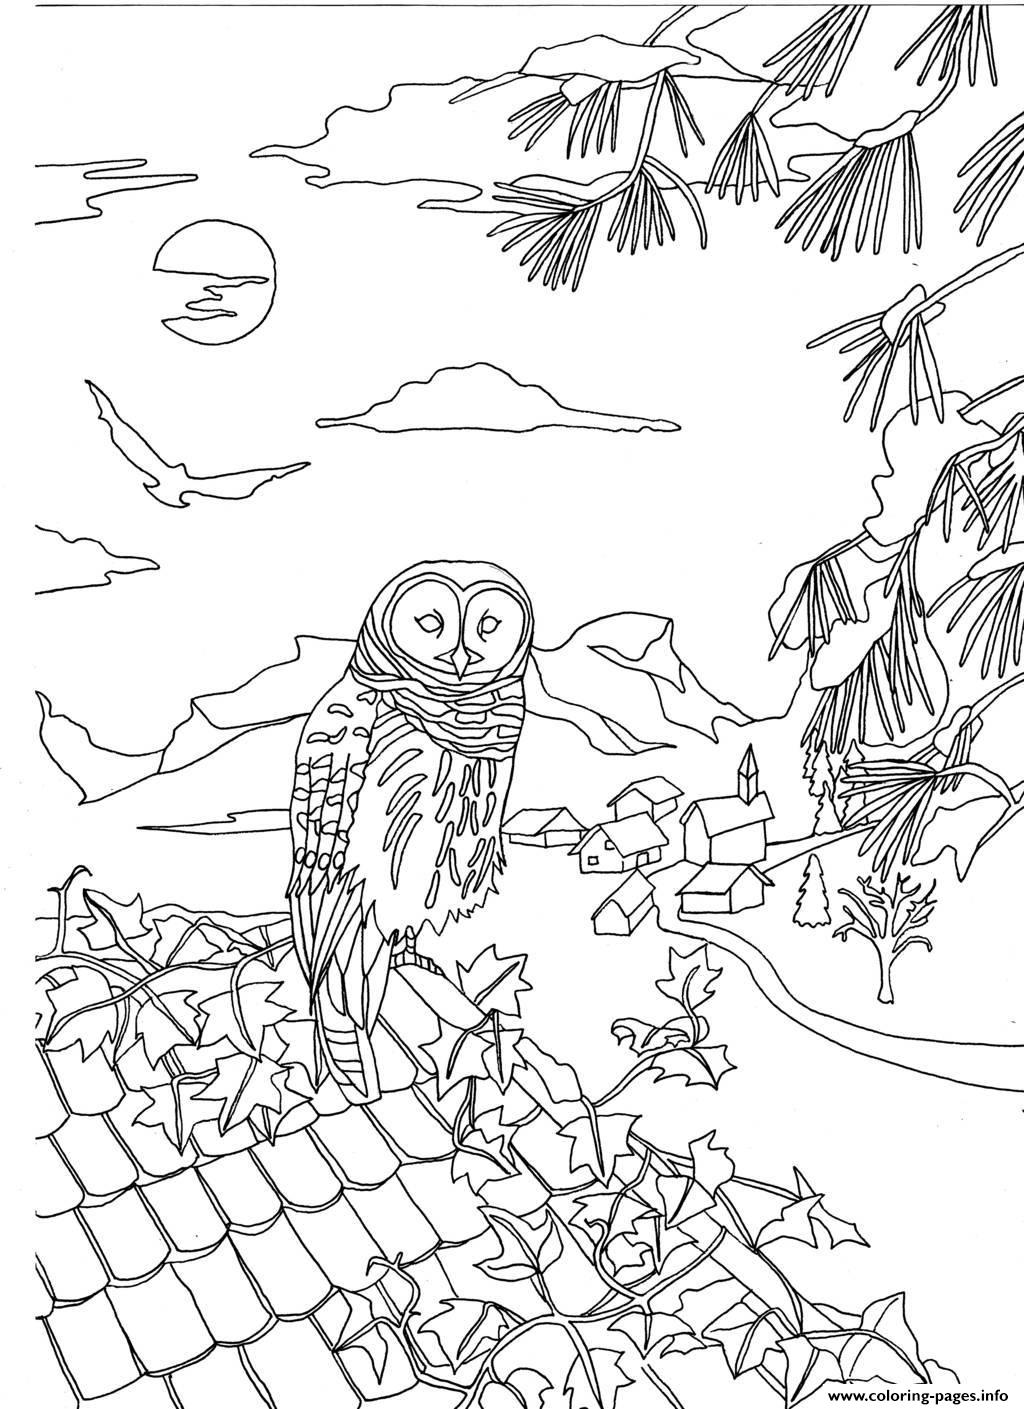 C coloring pages for adults - C Coloring Pages For Adults 49